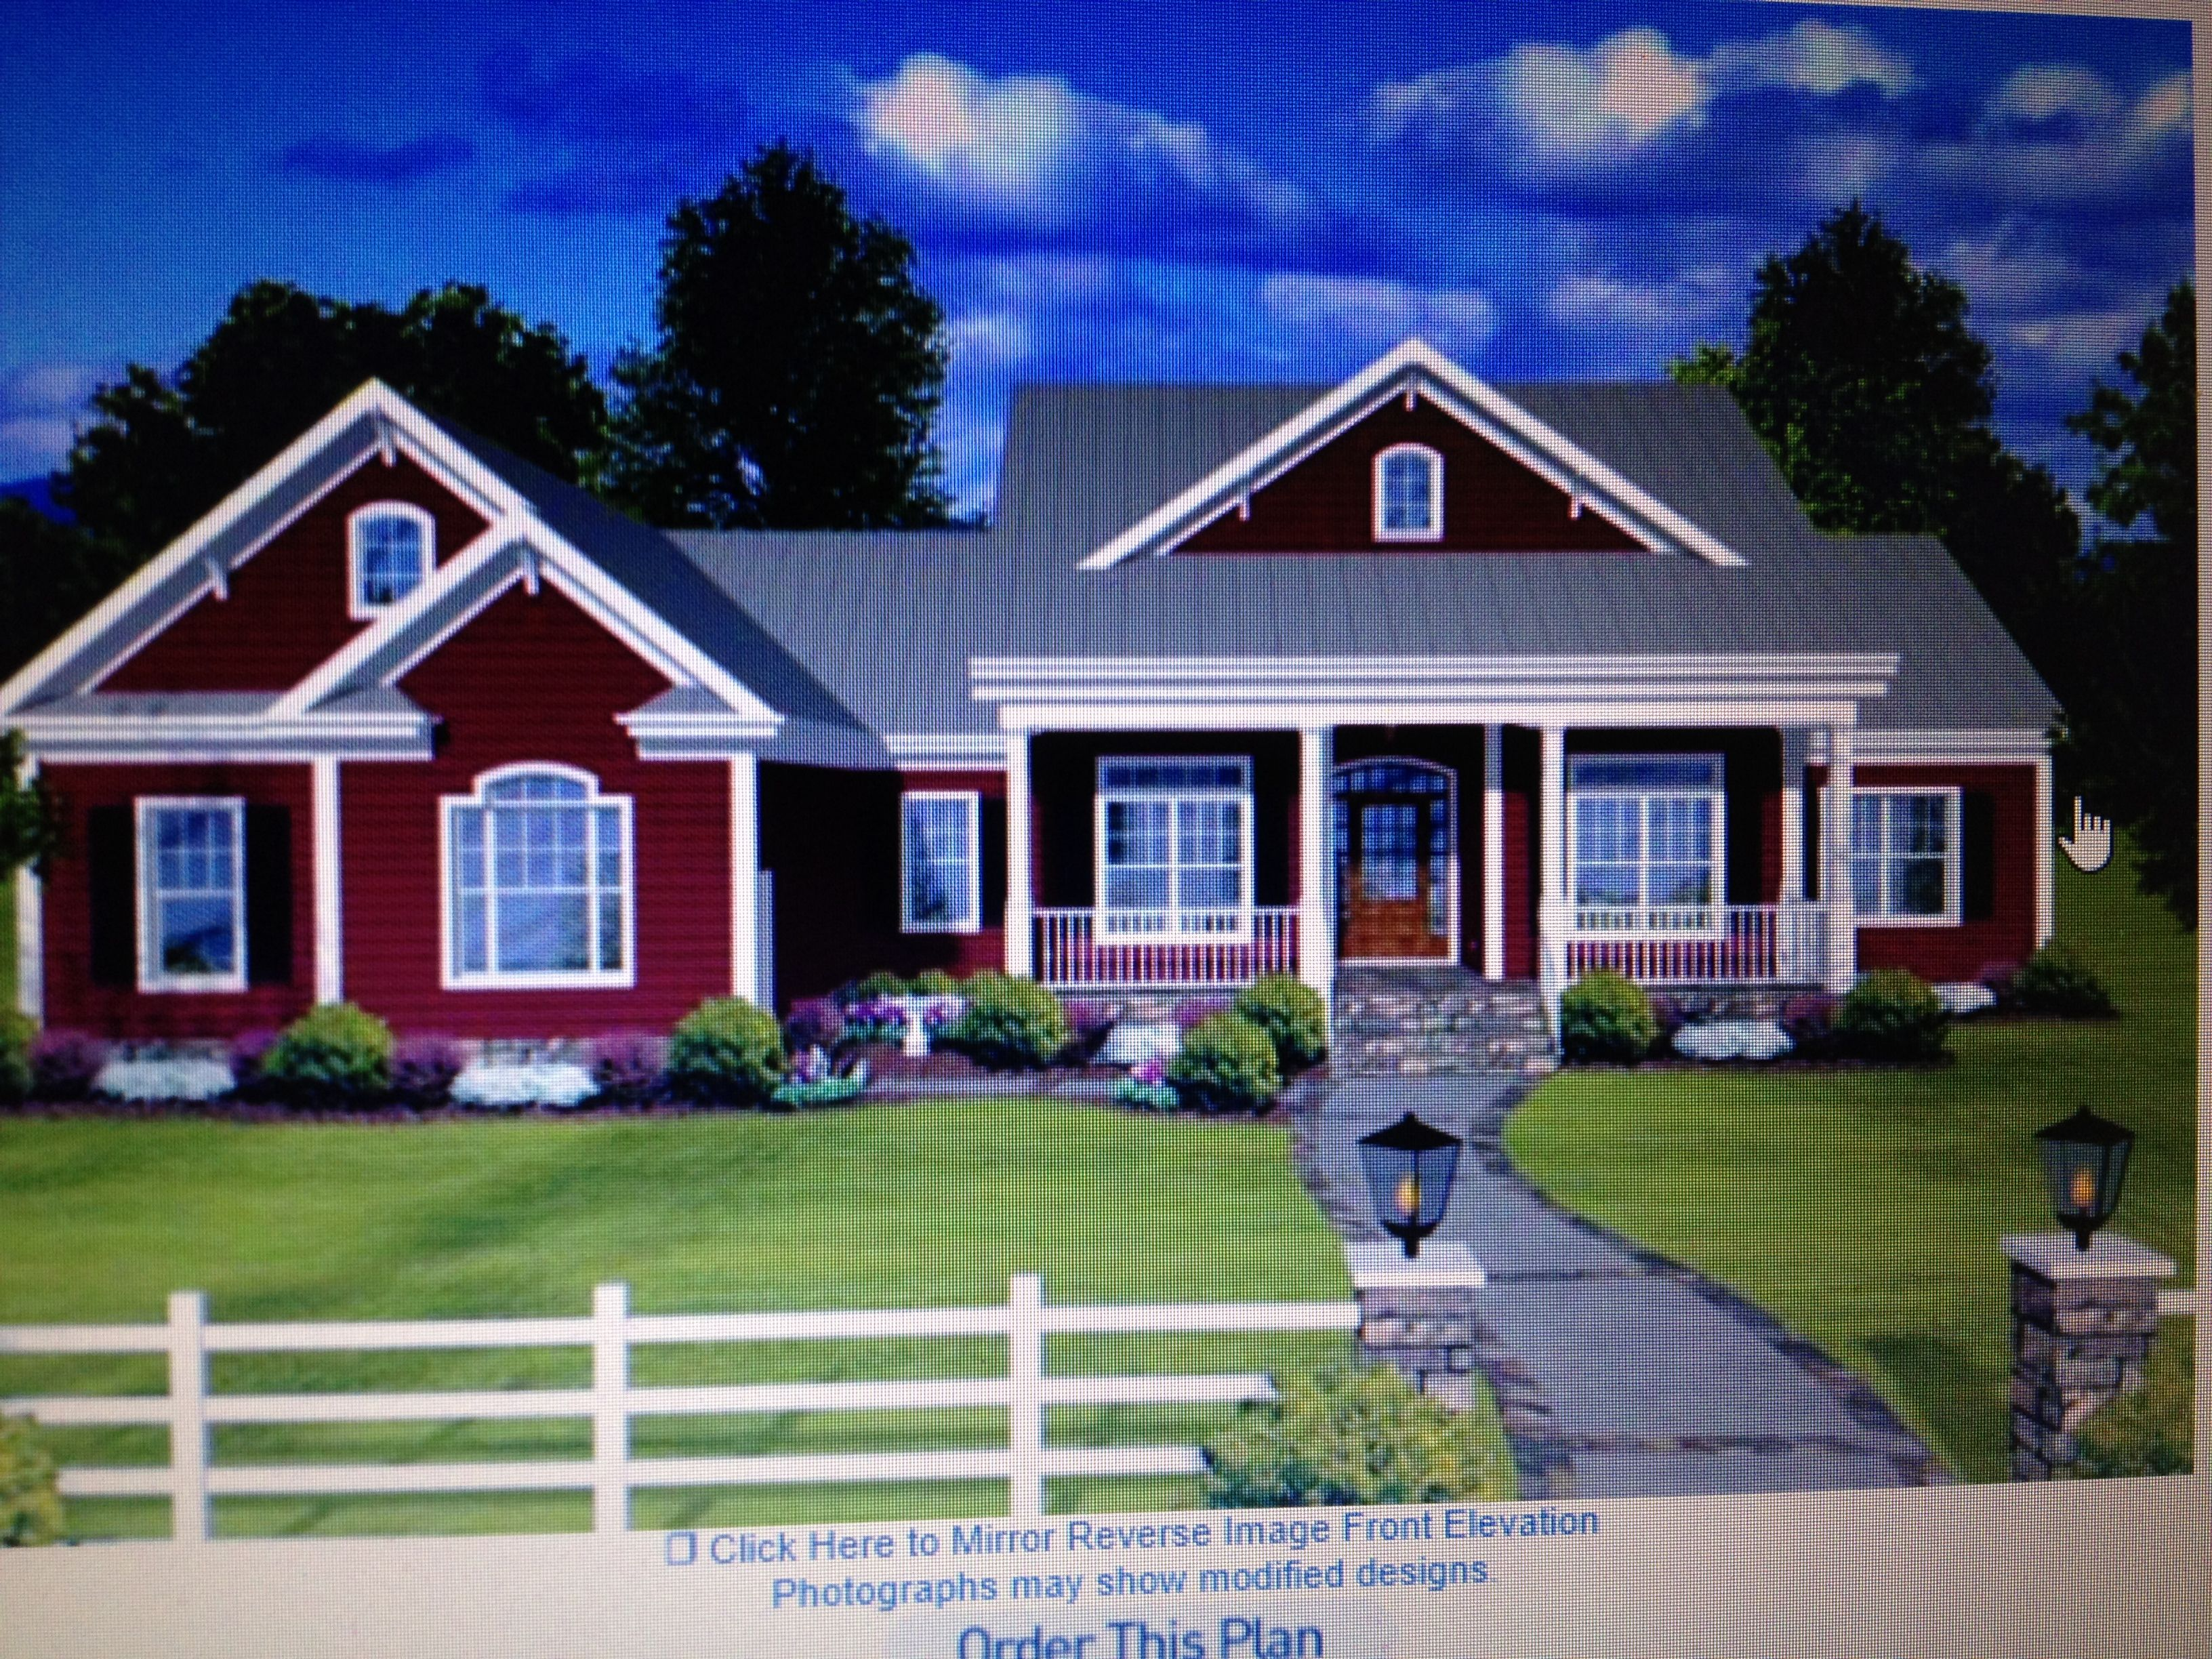 0d0179801ef93032f84ac58f04eec762 Top Result 52 Best Of Craftsman Style Home Plans Photography 2017 Hdj5